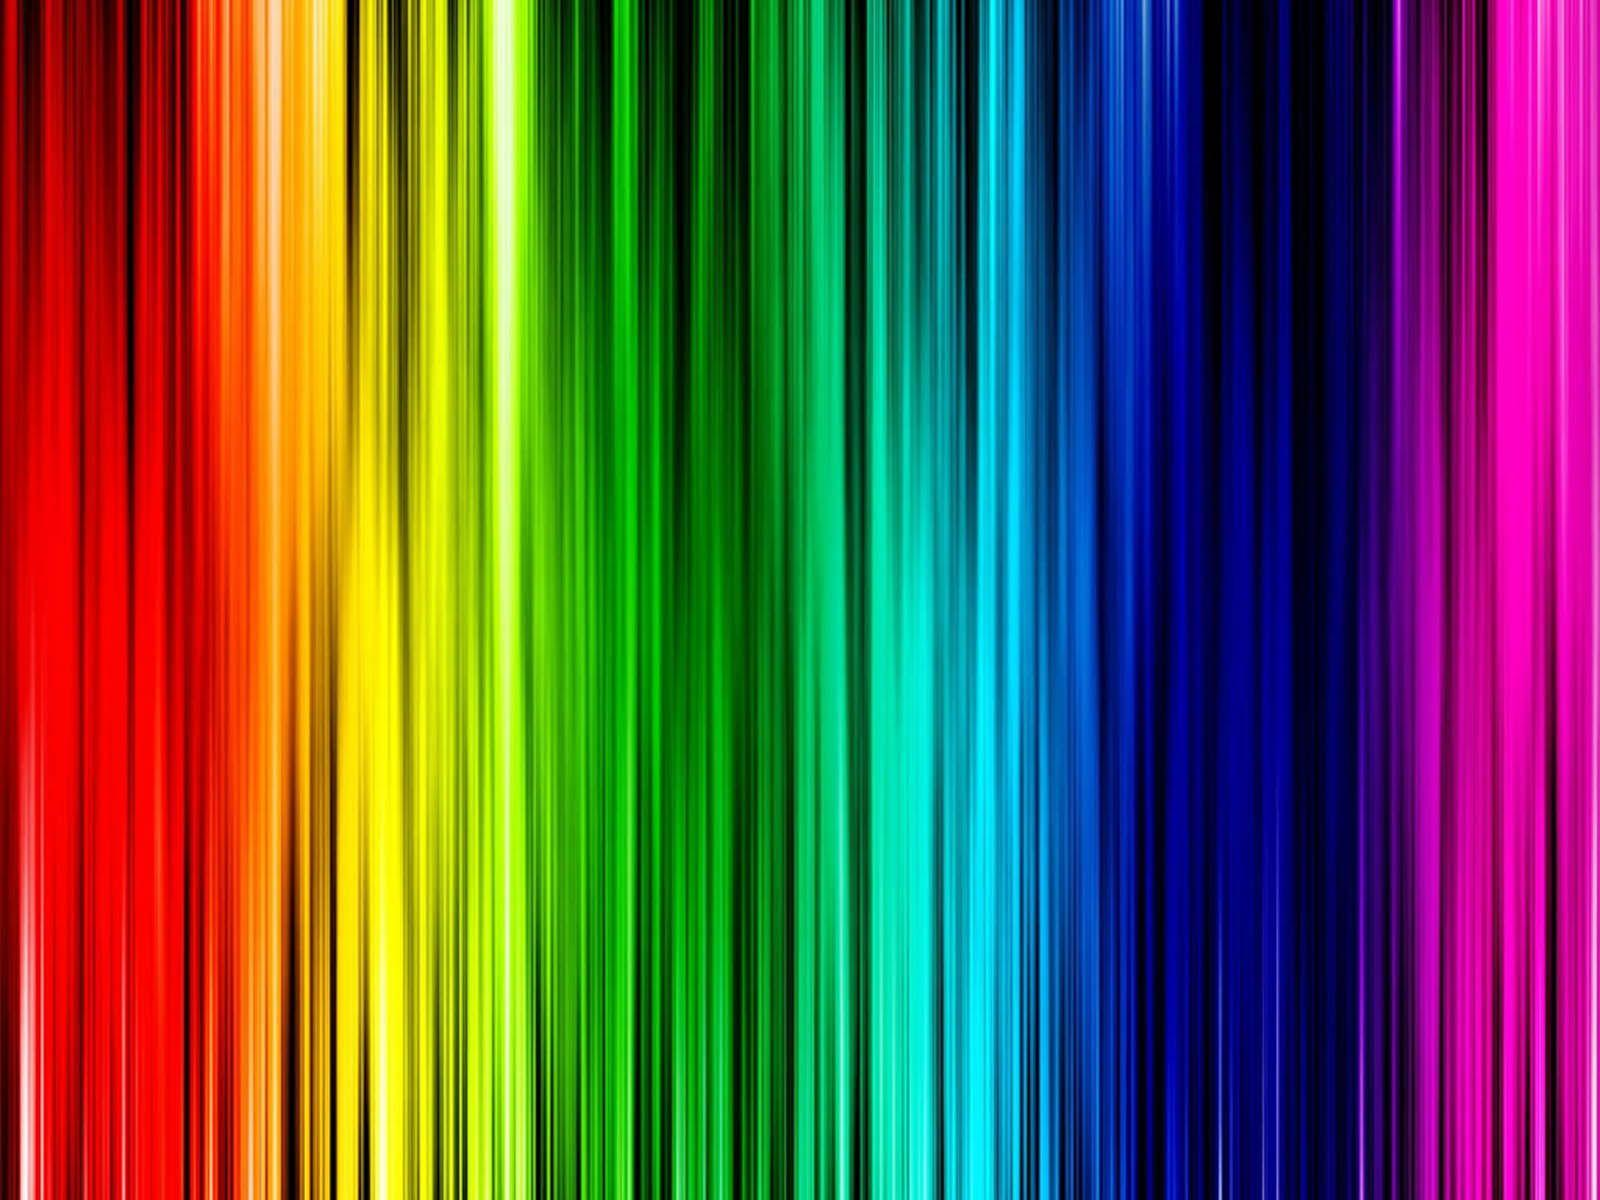 Live Rainbow Wallpapers - Wallpaper Cave